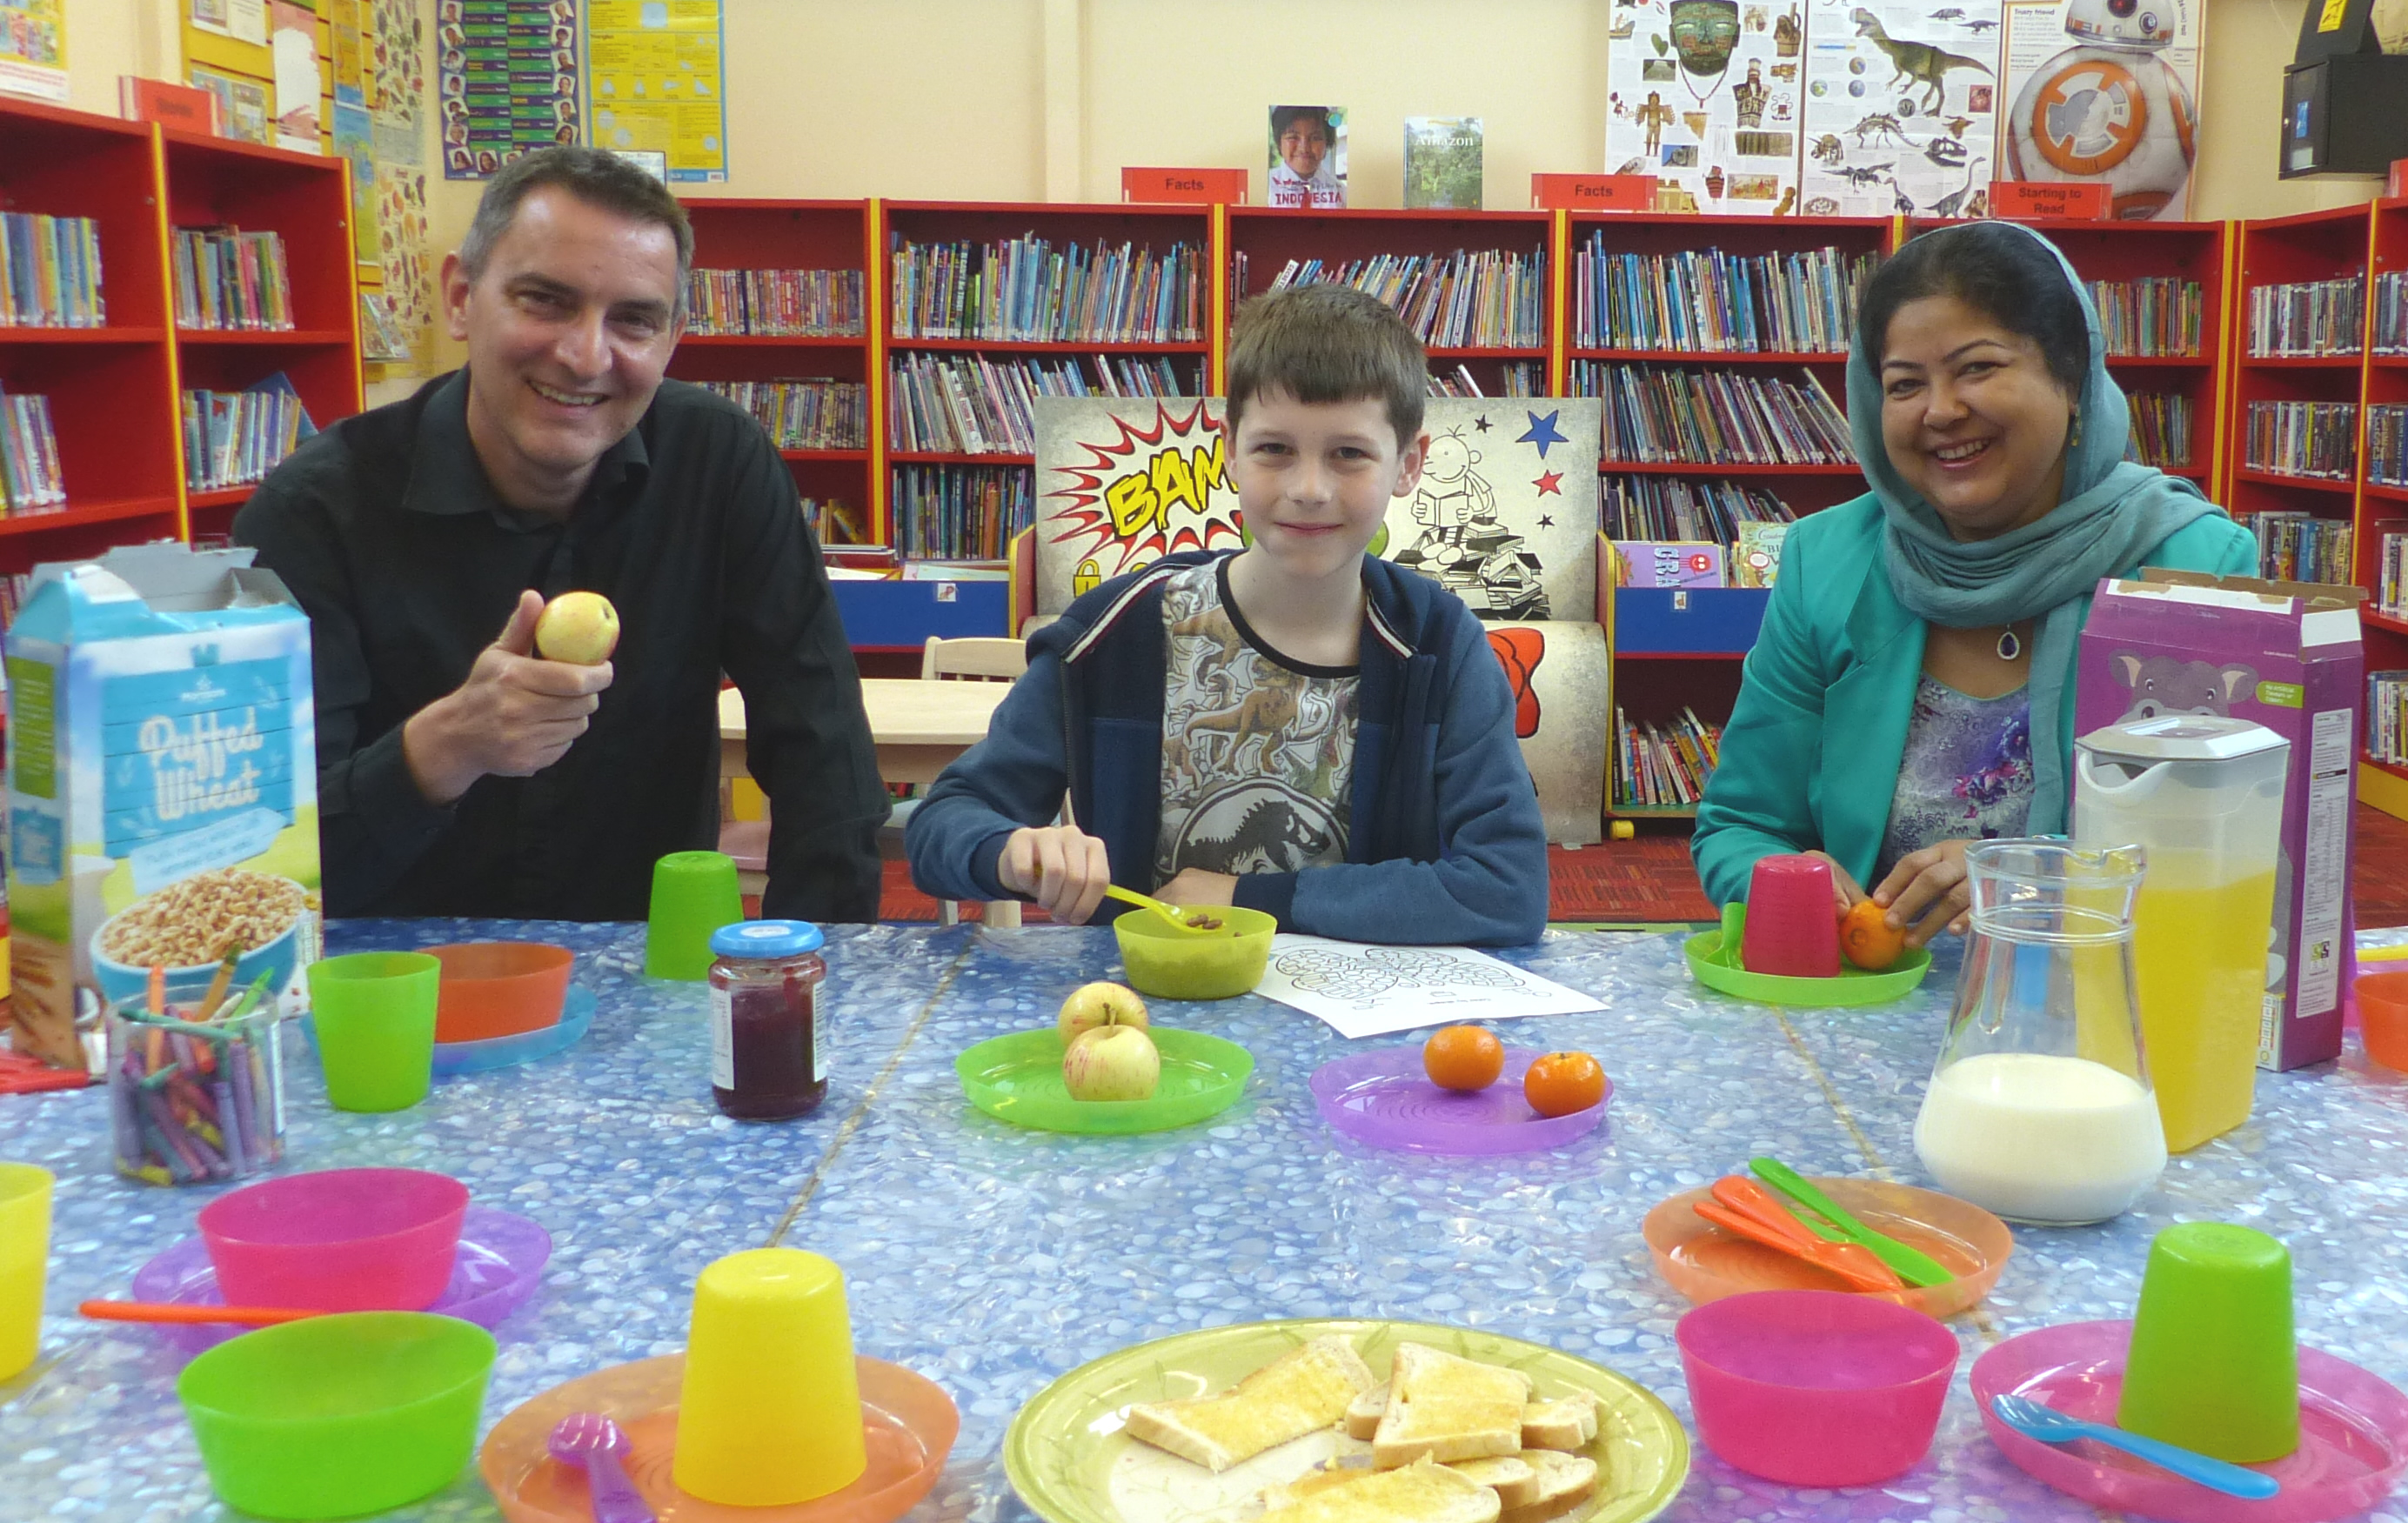 Cllr Hackett, Oliver and Cllr Khatun with breakfast at Stone Cross